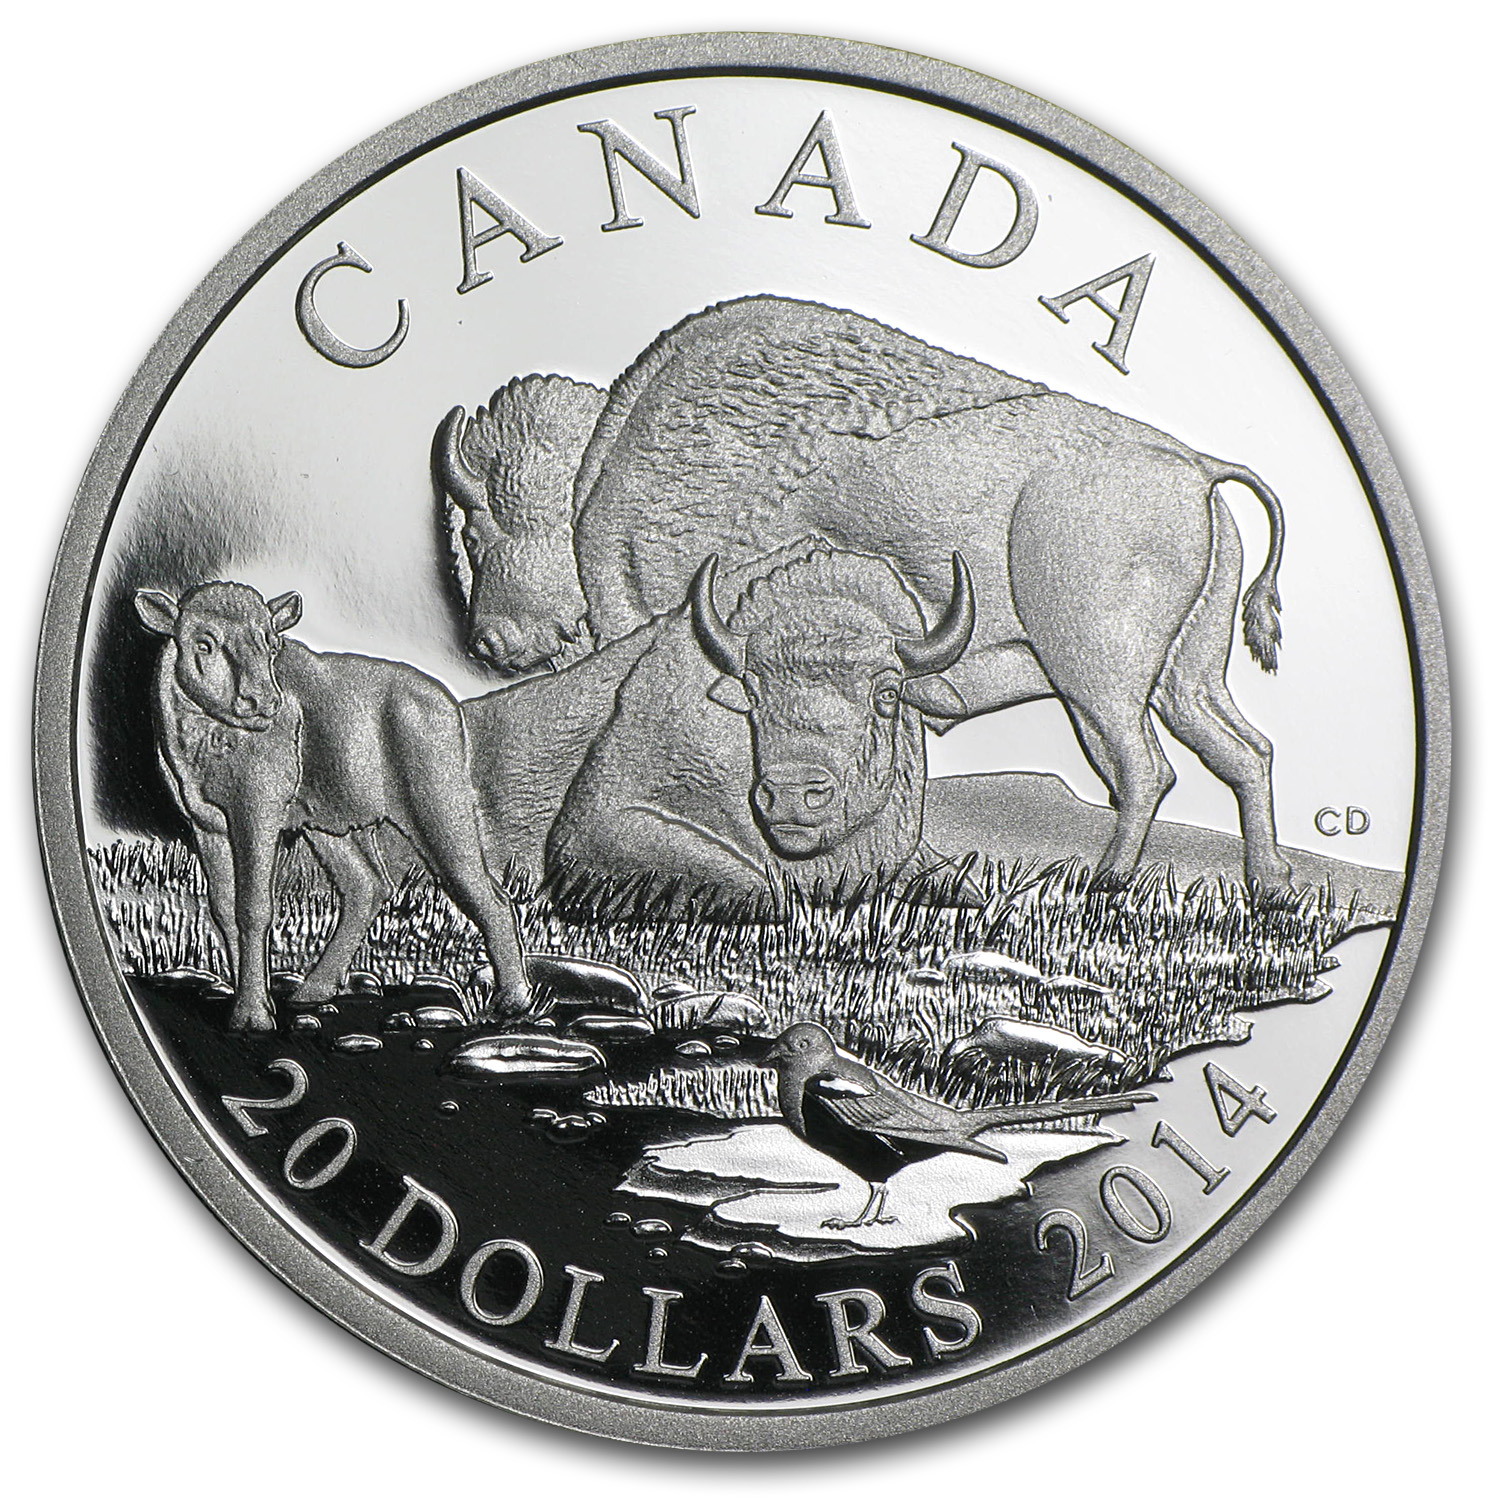 2014 Canadian 1 oz Proof Silver Bison - A Family at Rest